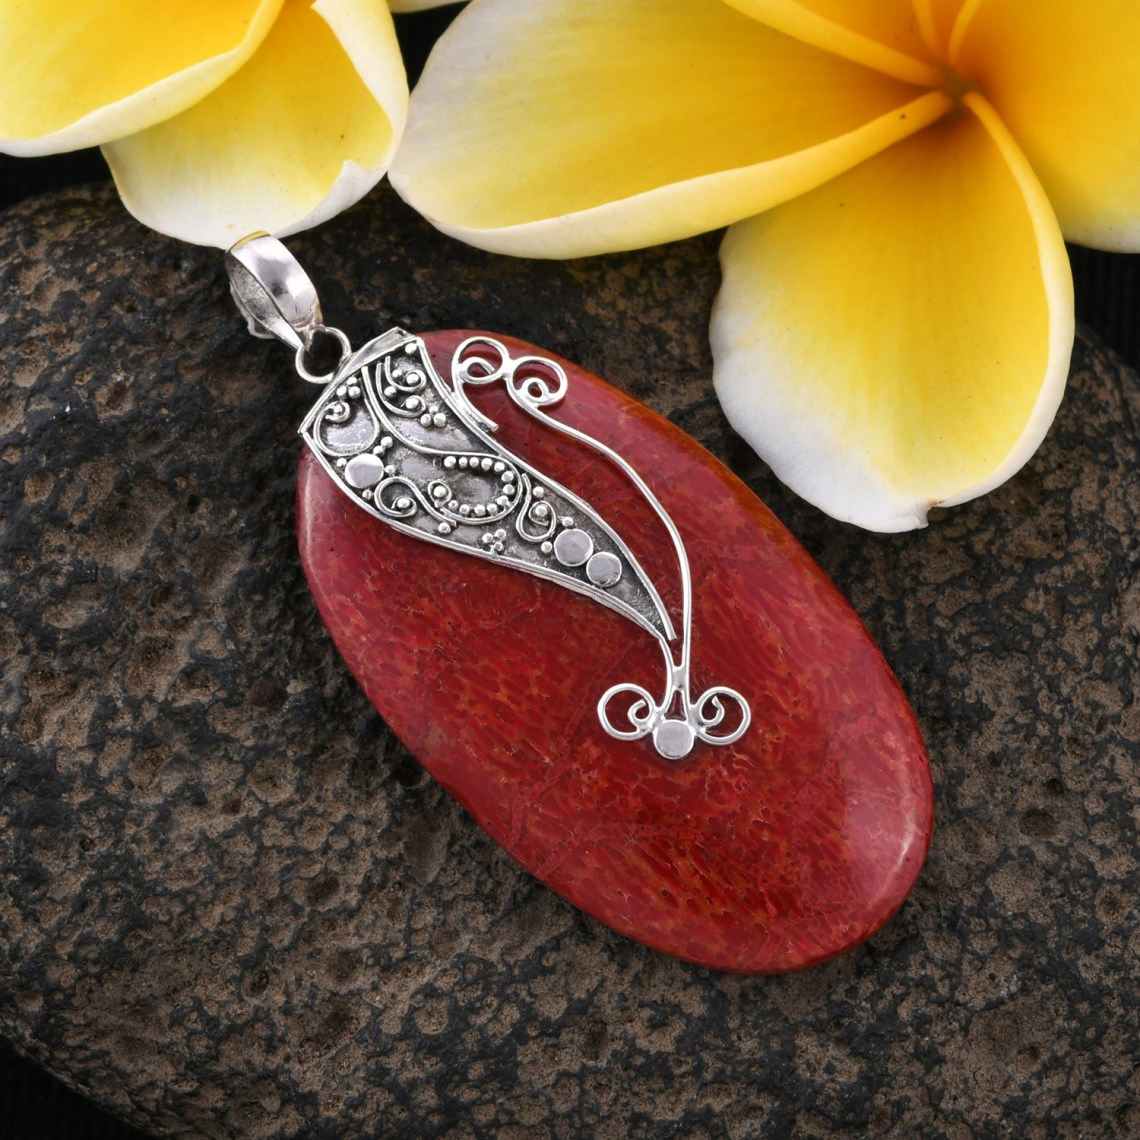 Red coral pendant with sterling silver accents.